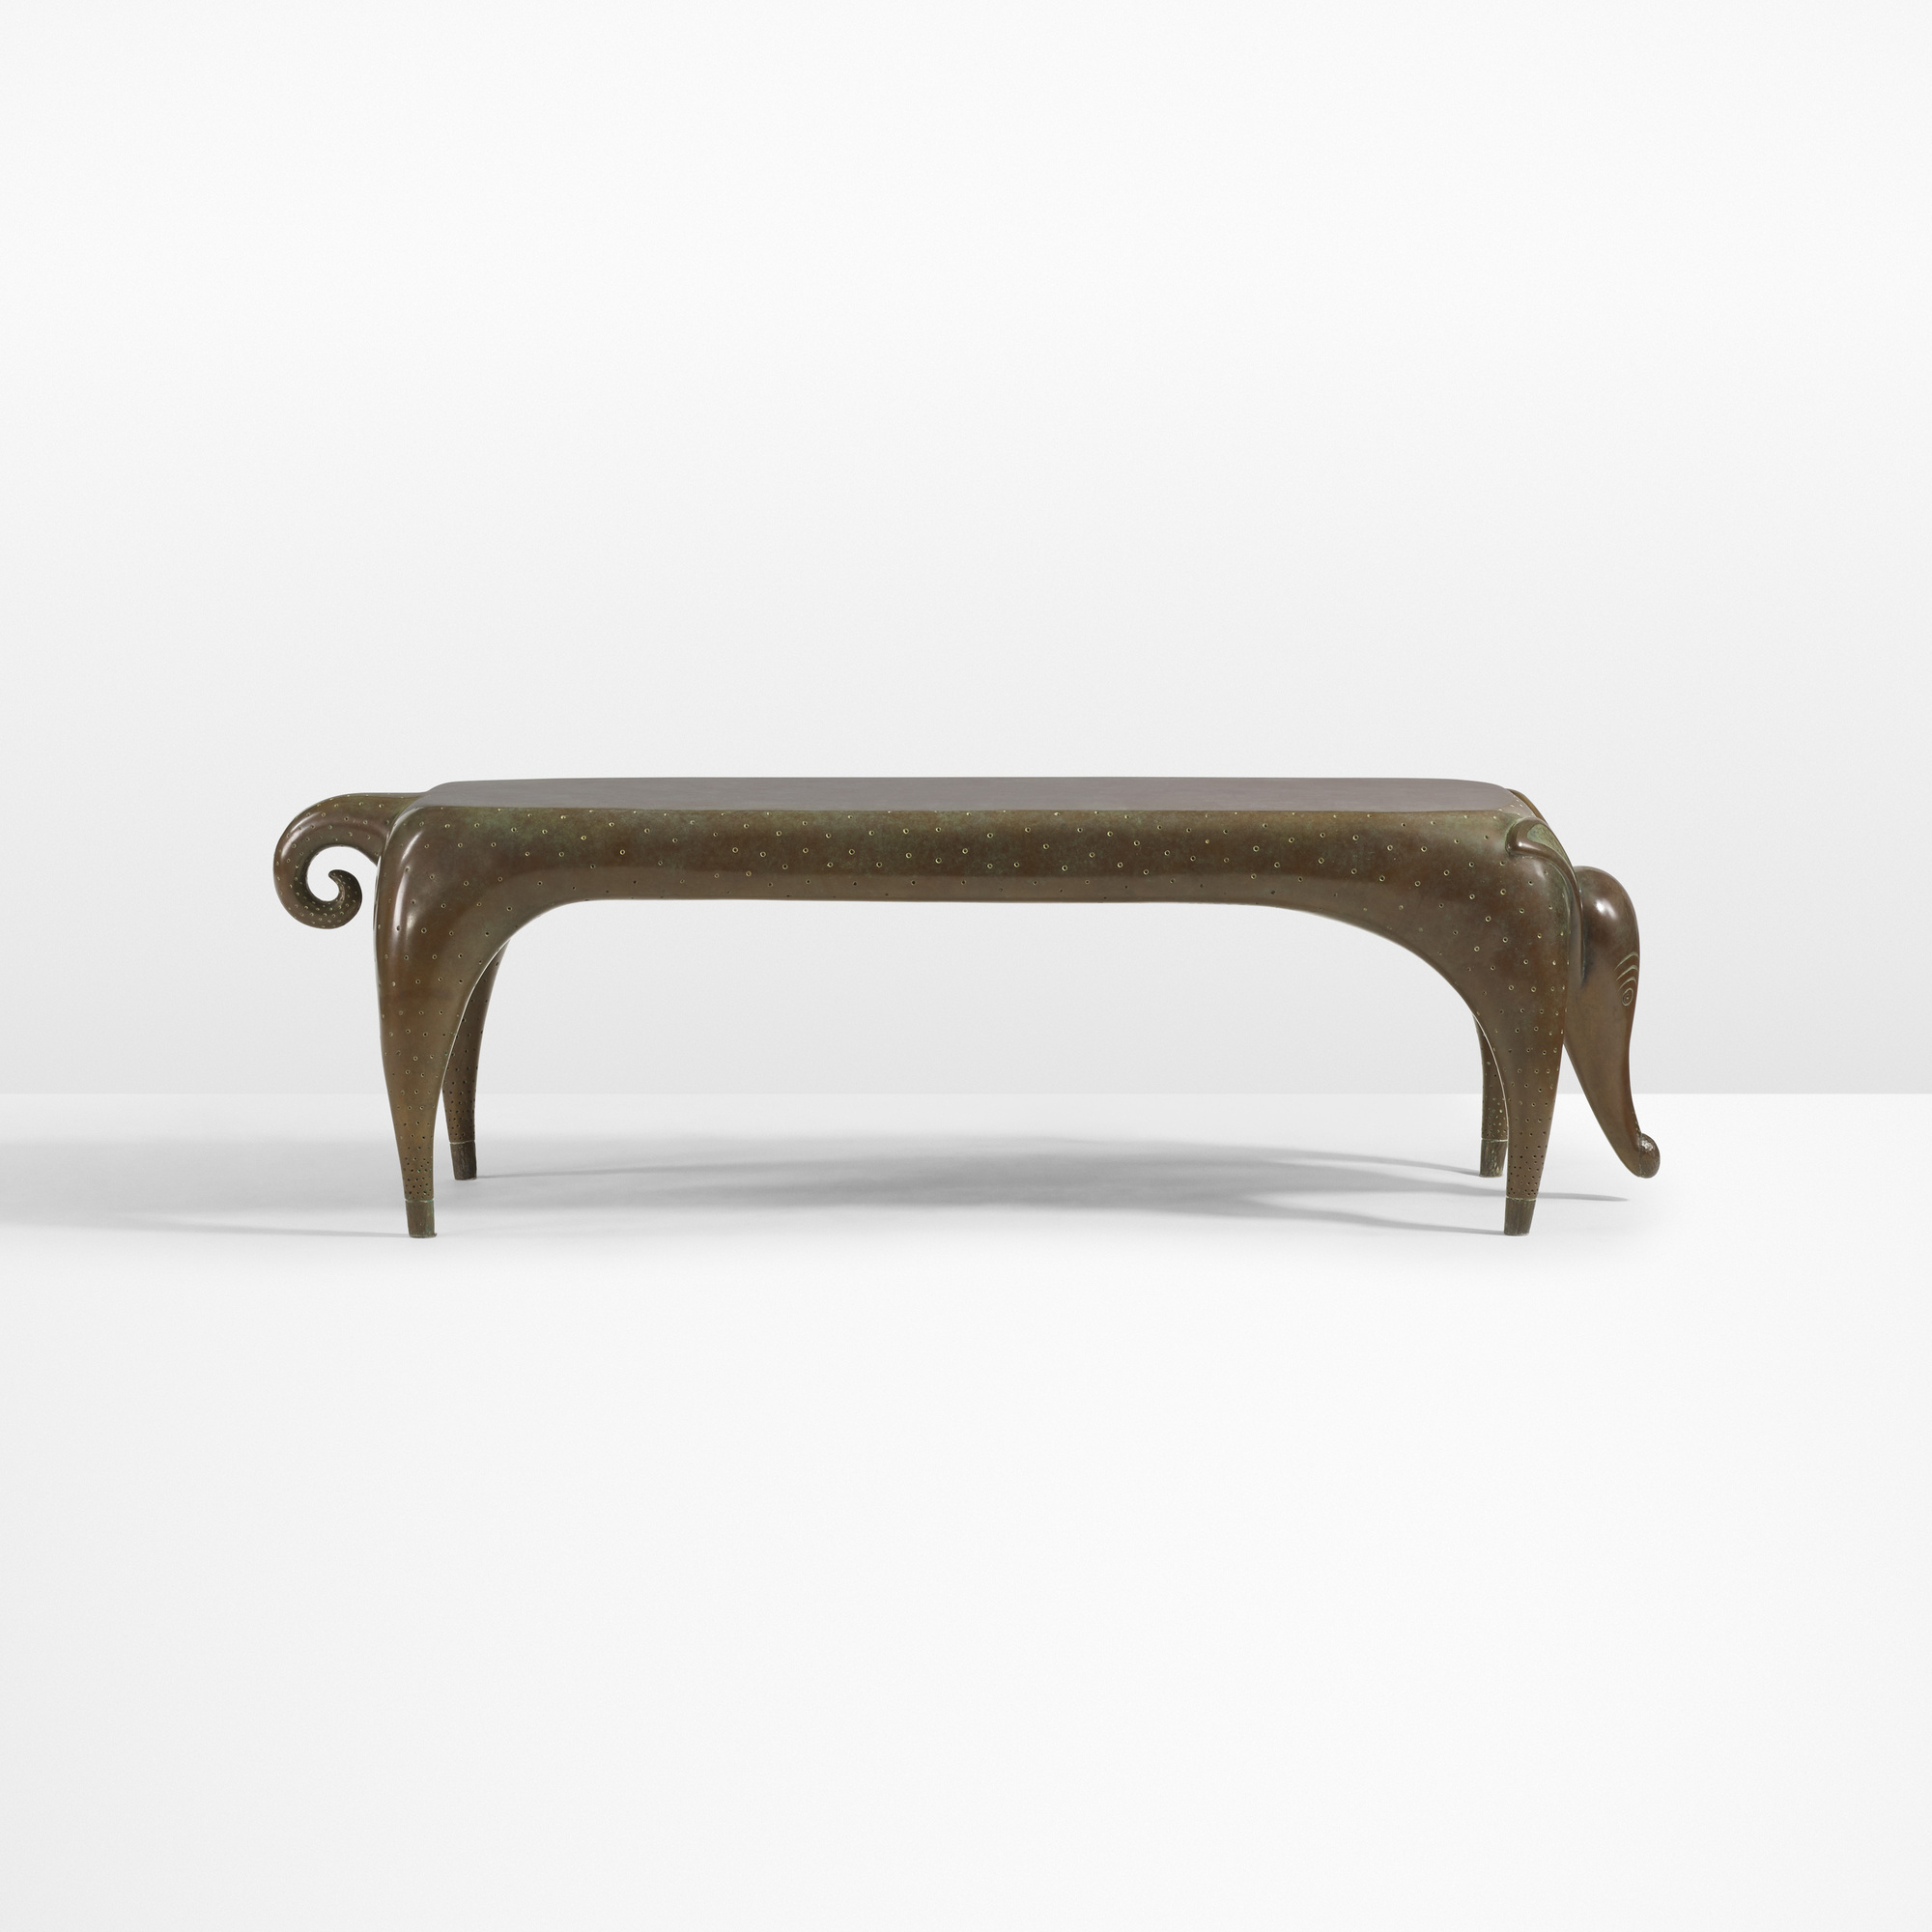 21: Judy Kensley McKie / Timid Dog bench (2 of 4)